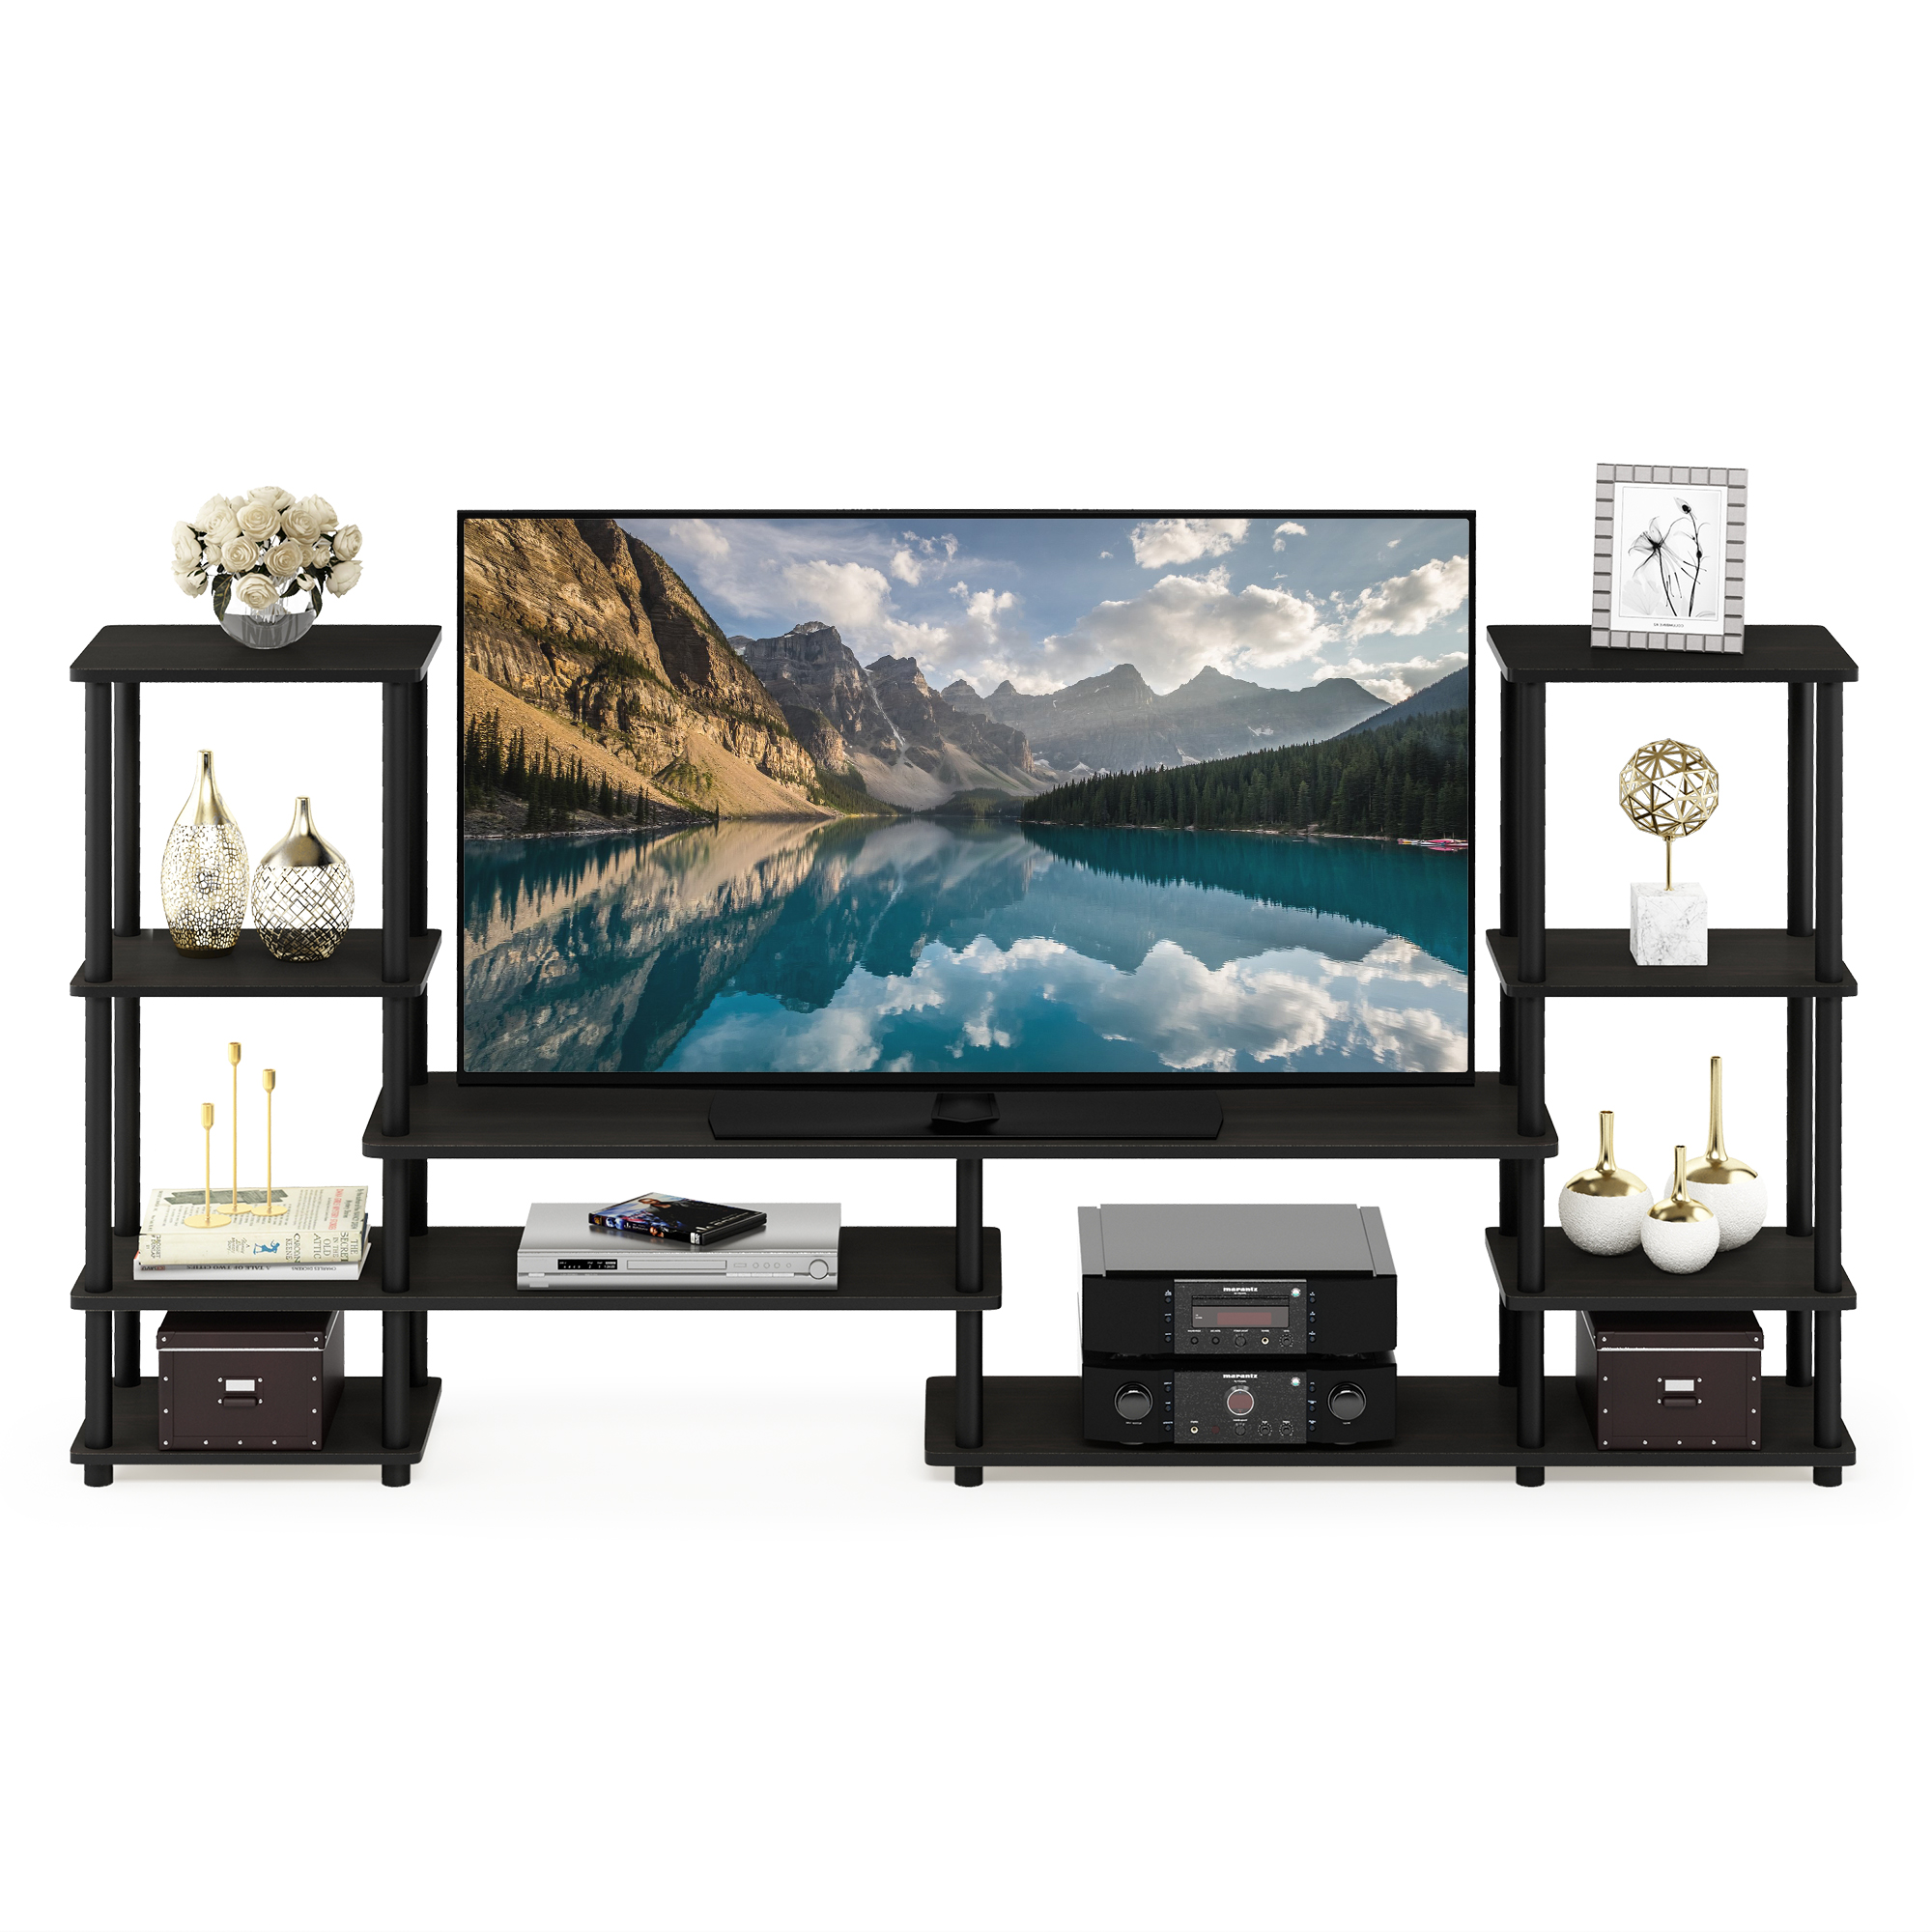 Furinno Turn-N-Tube Grand Entertainment Center, Espresso/Black 14146EX/BK